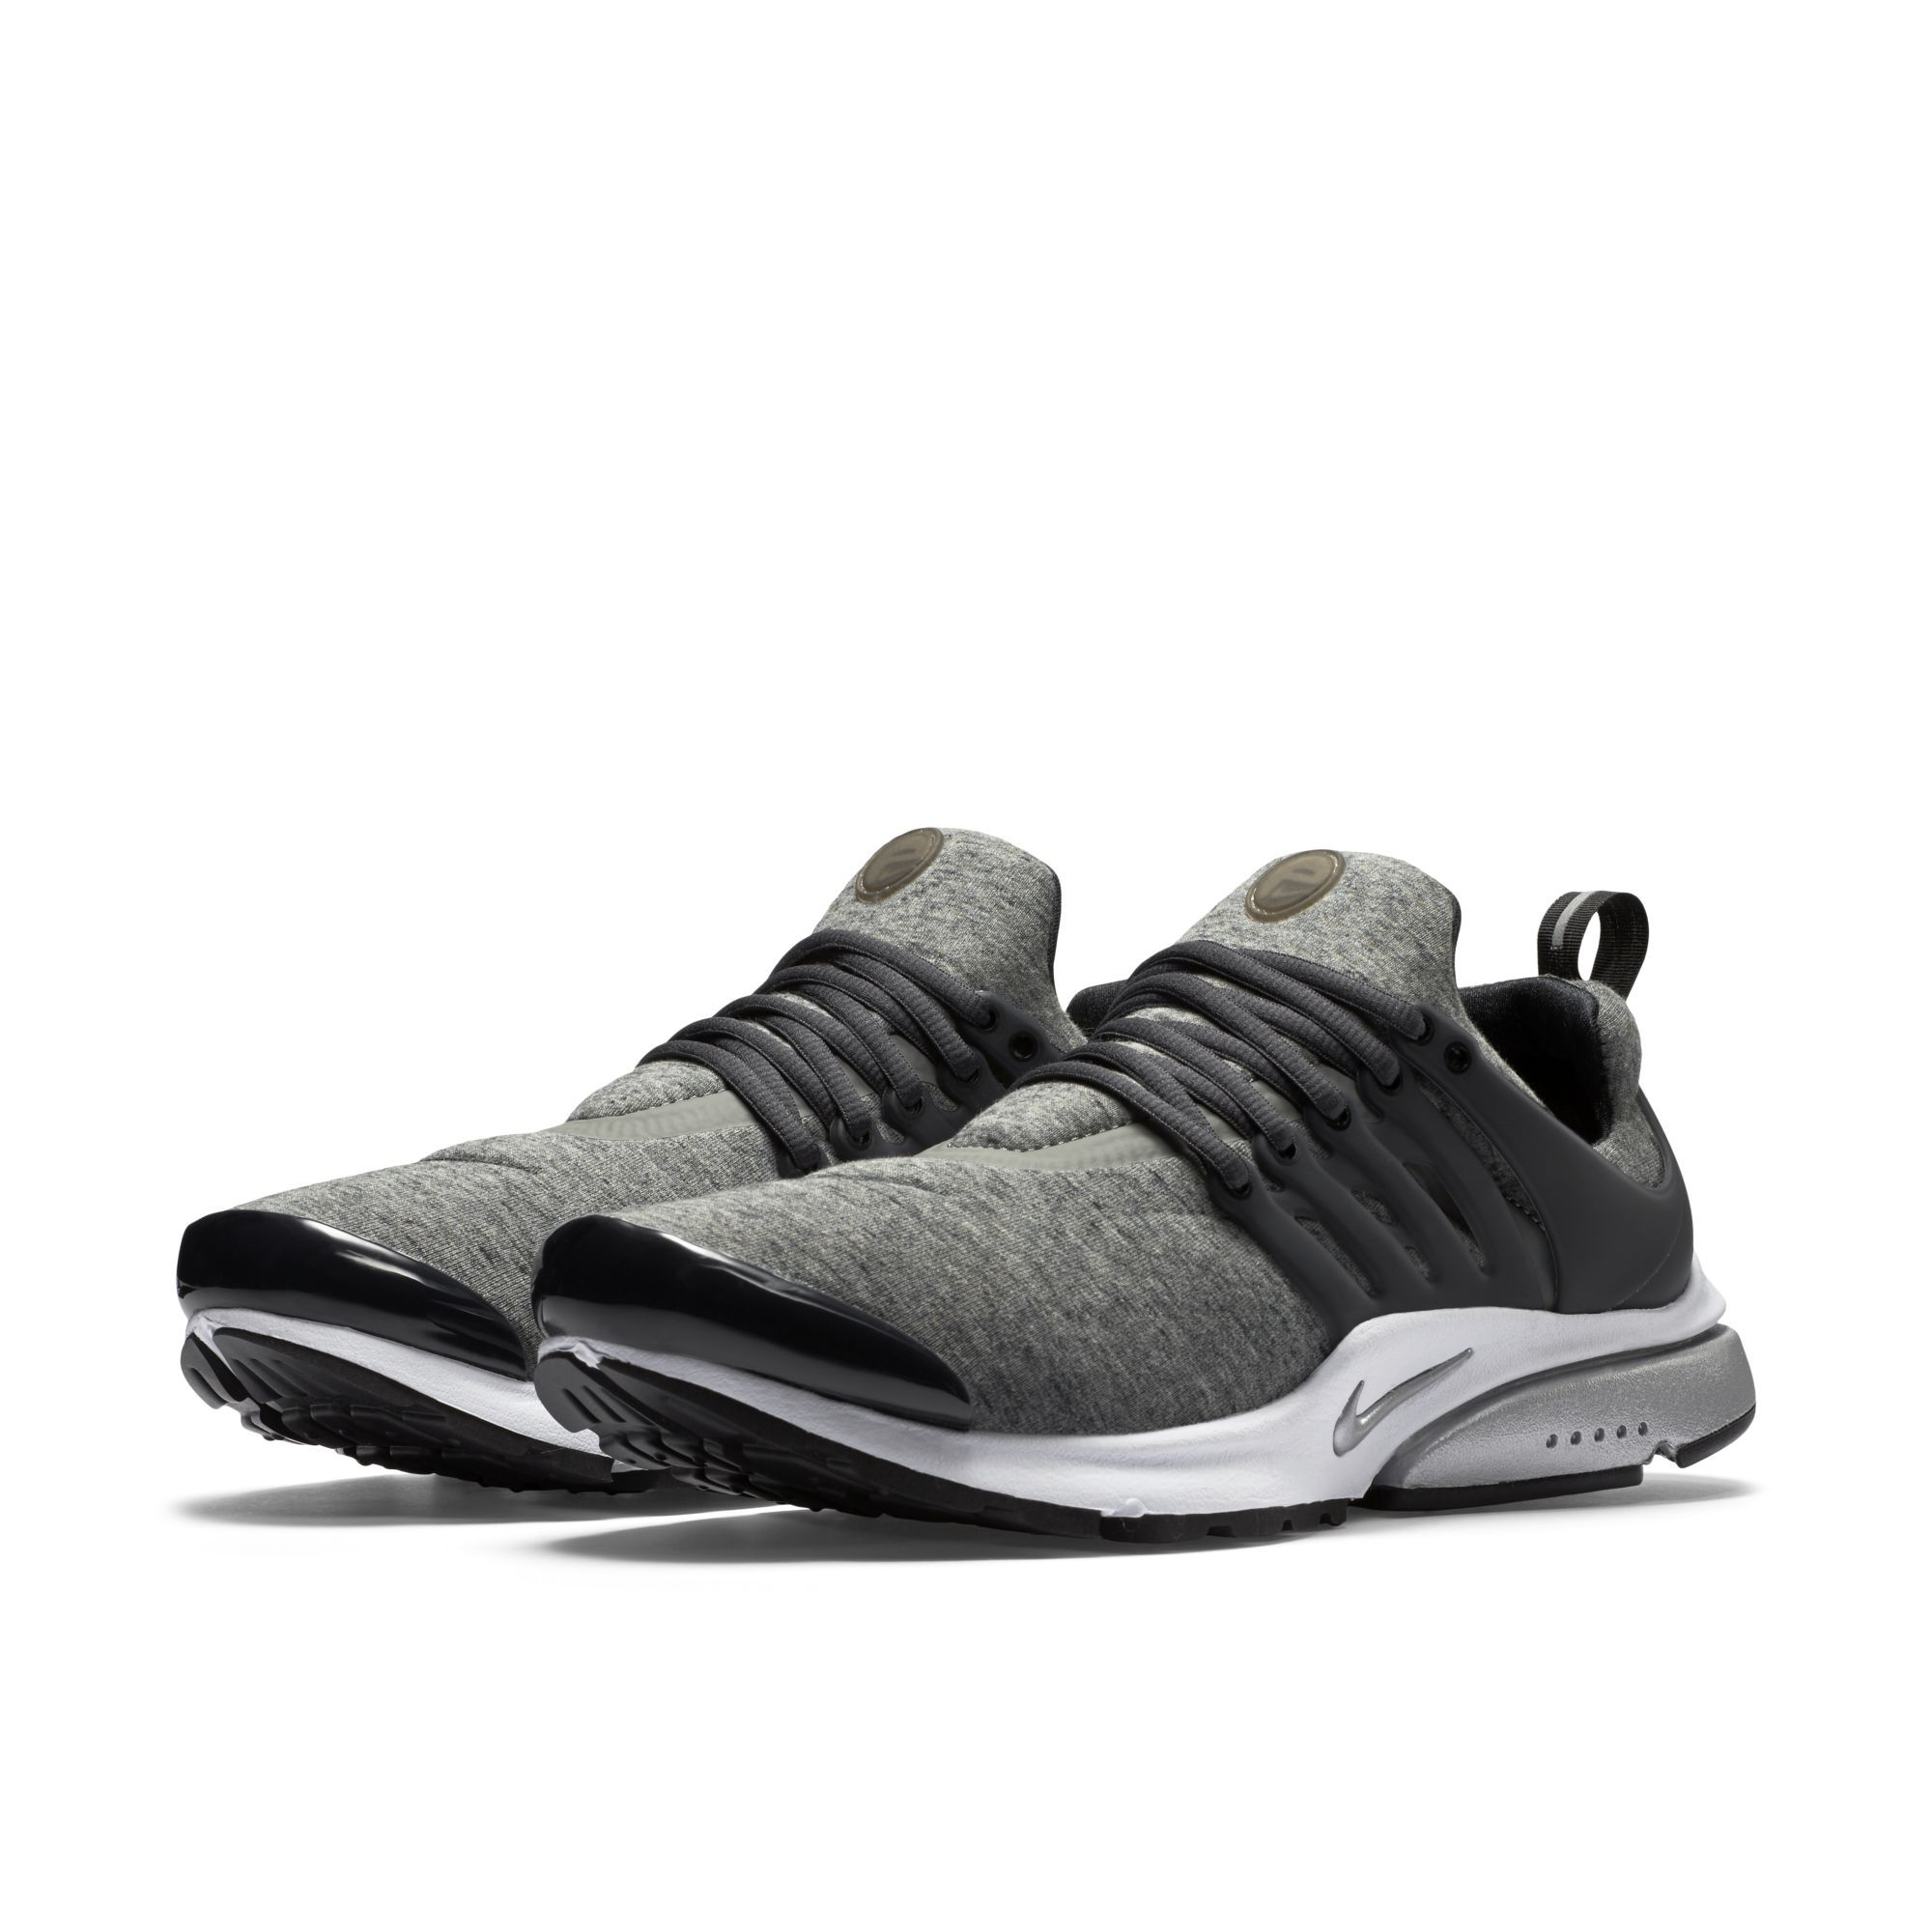 Et Shoes Presto Nike QsKicks CheapSportswear Air Tp dBtshCxQro